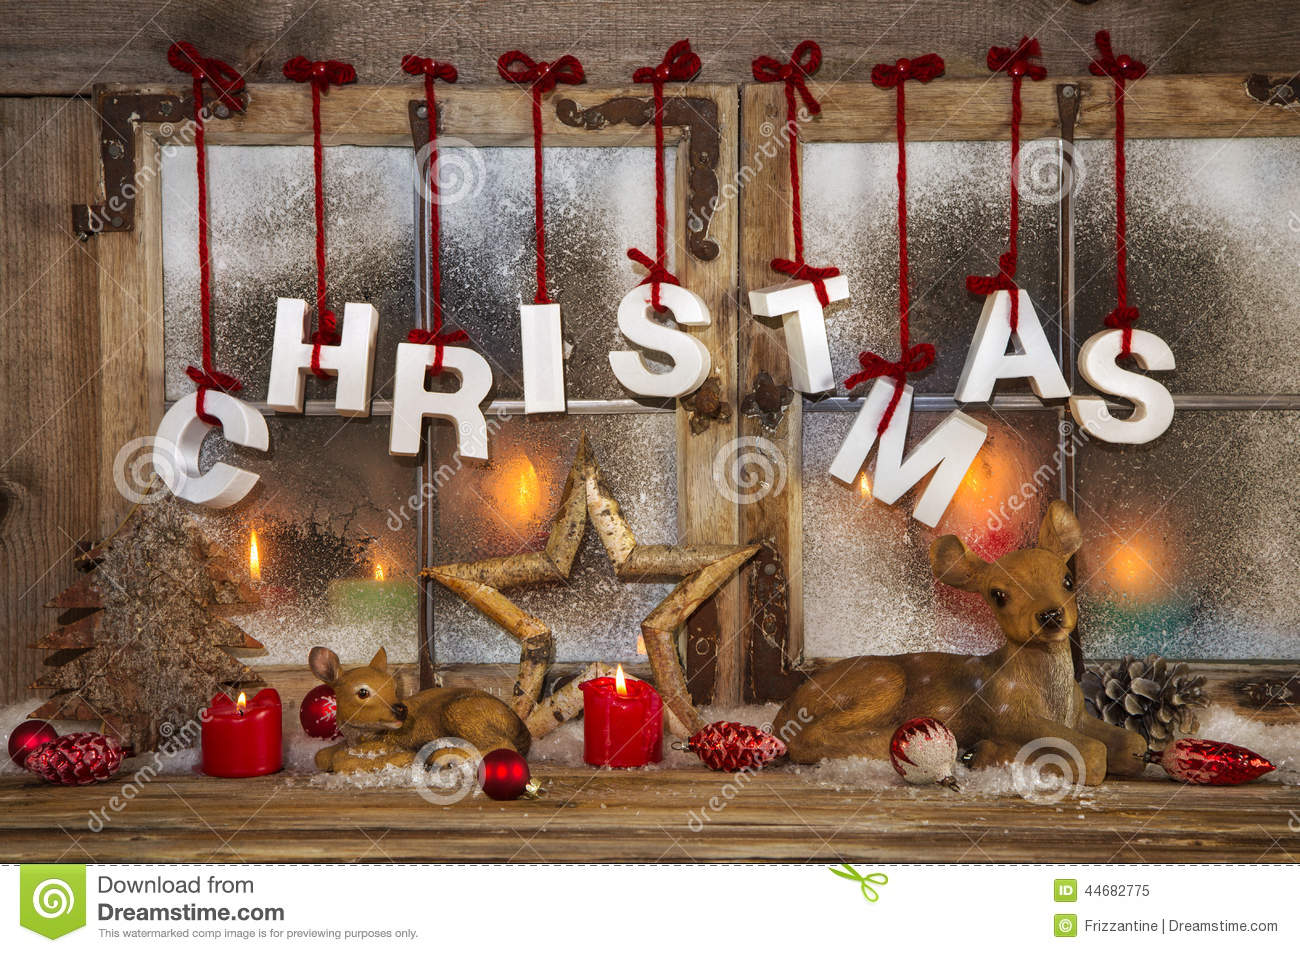 Outdoor christmas window decorations - Outdoor Christmas Window Decoration With Red Candles Deer And T Stock Photo